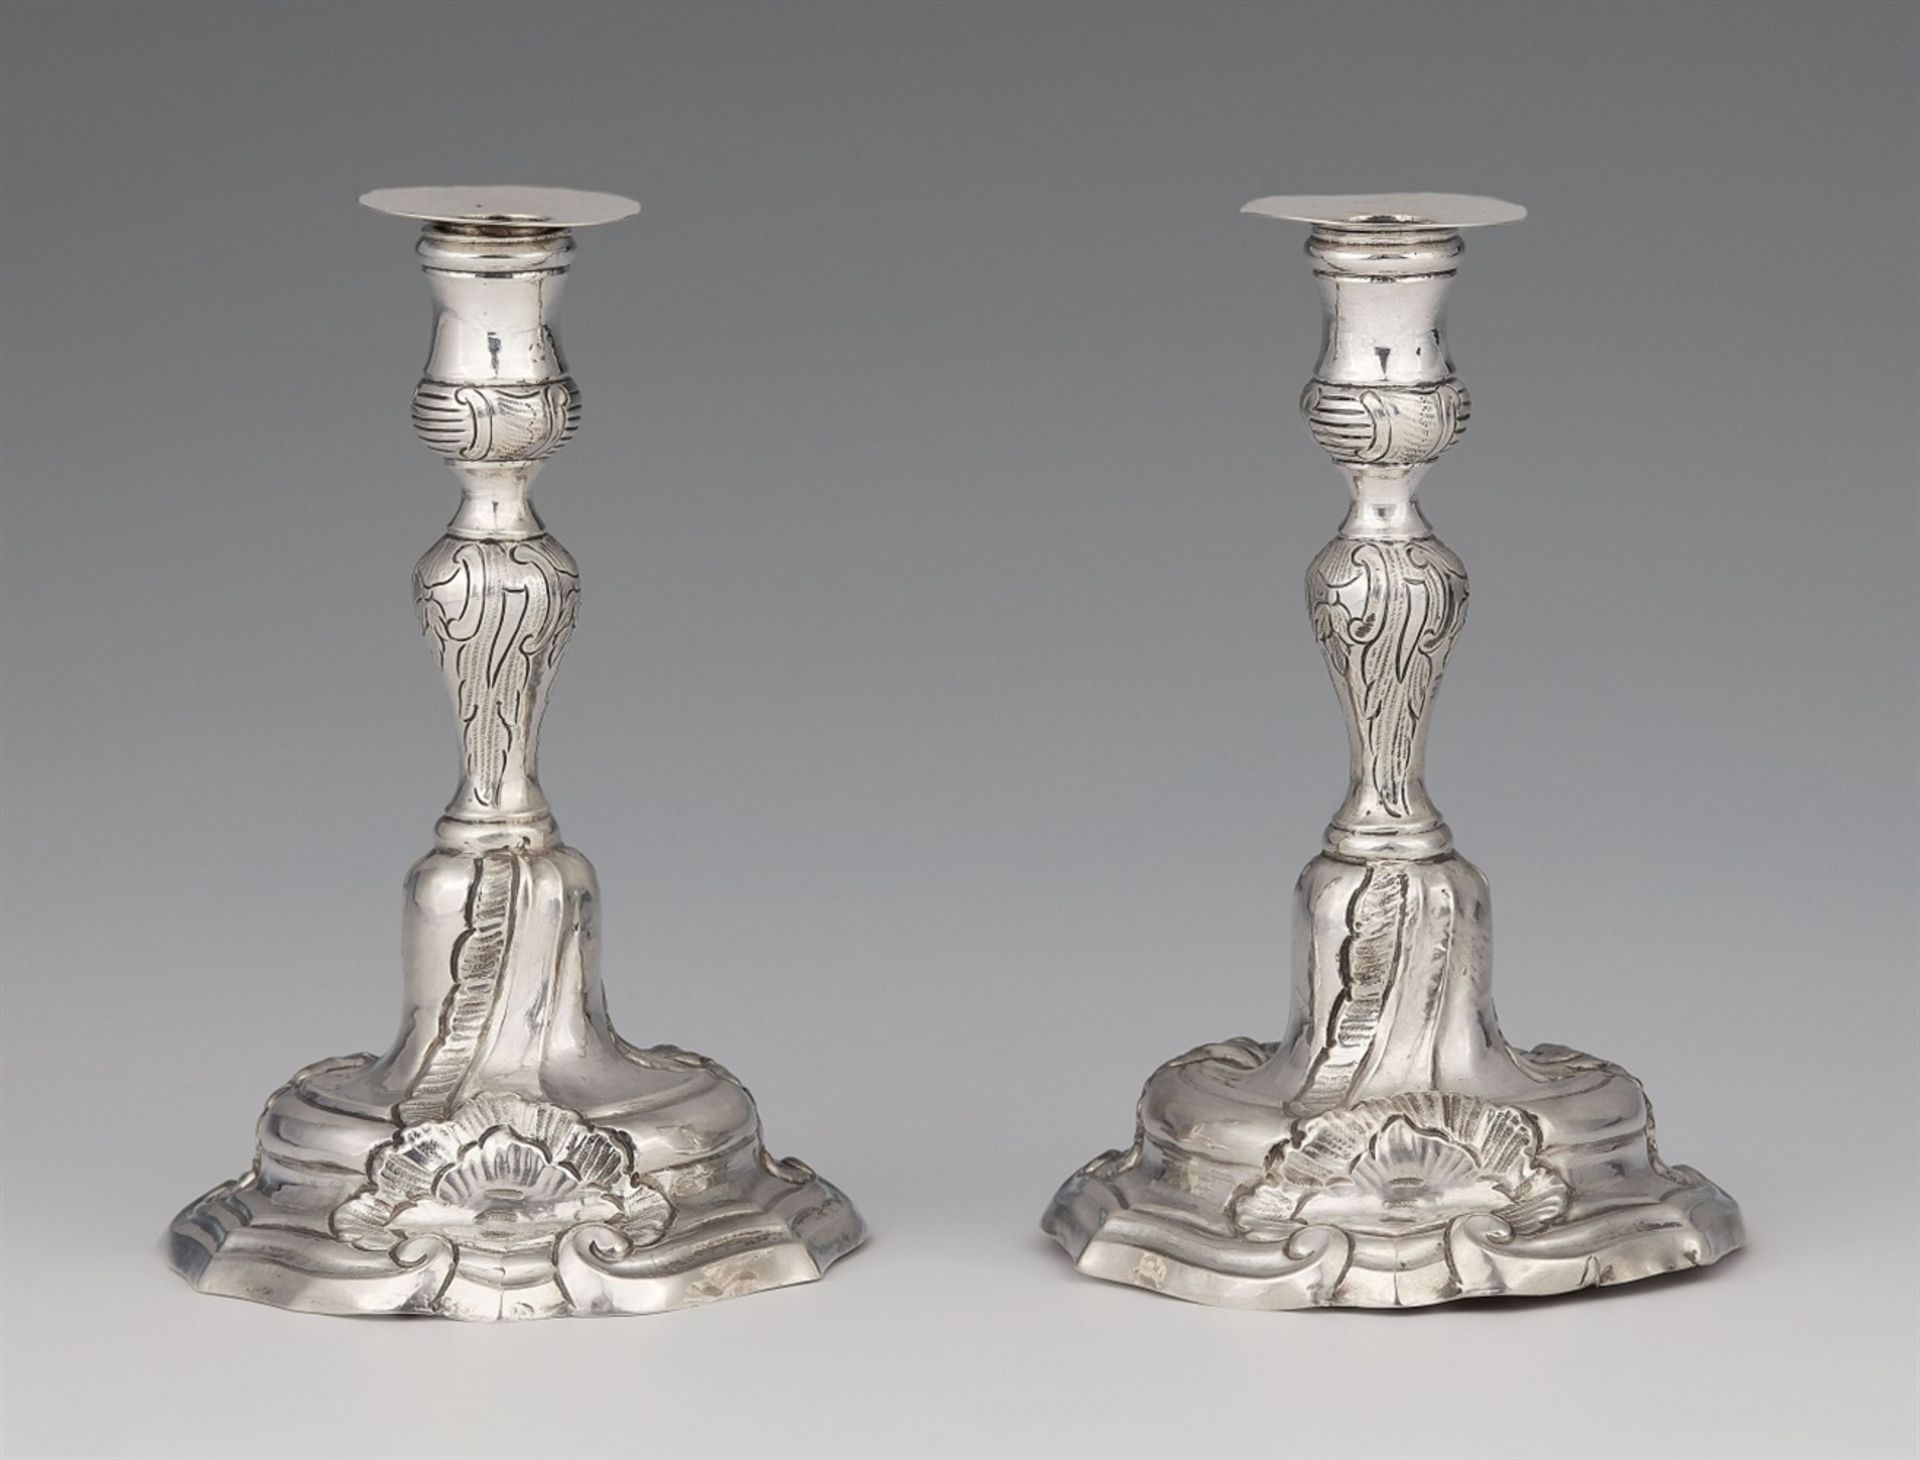 Los 731 - A pair of miniature silver candlesticksSilver Baluster-form shafts with shellwork décor issuing from